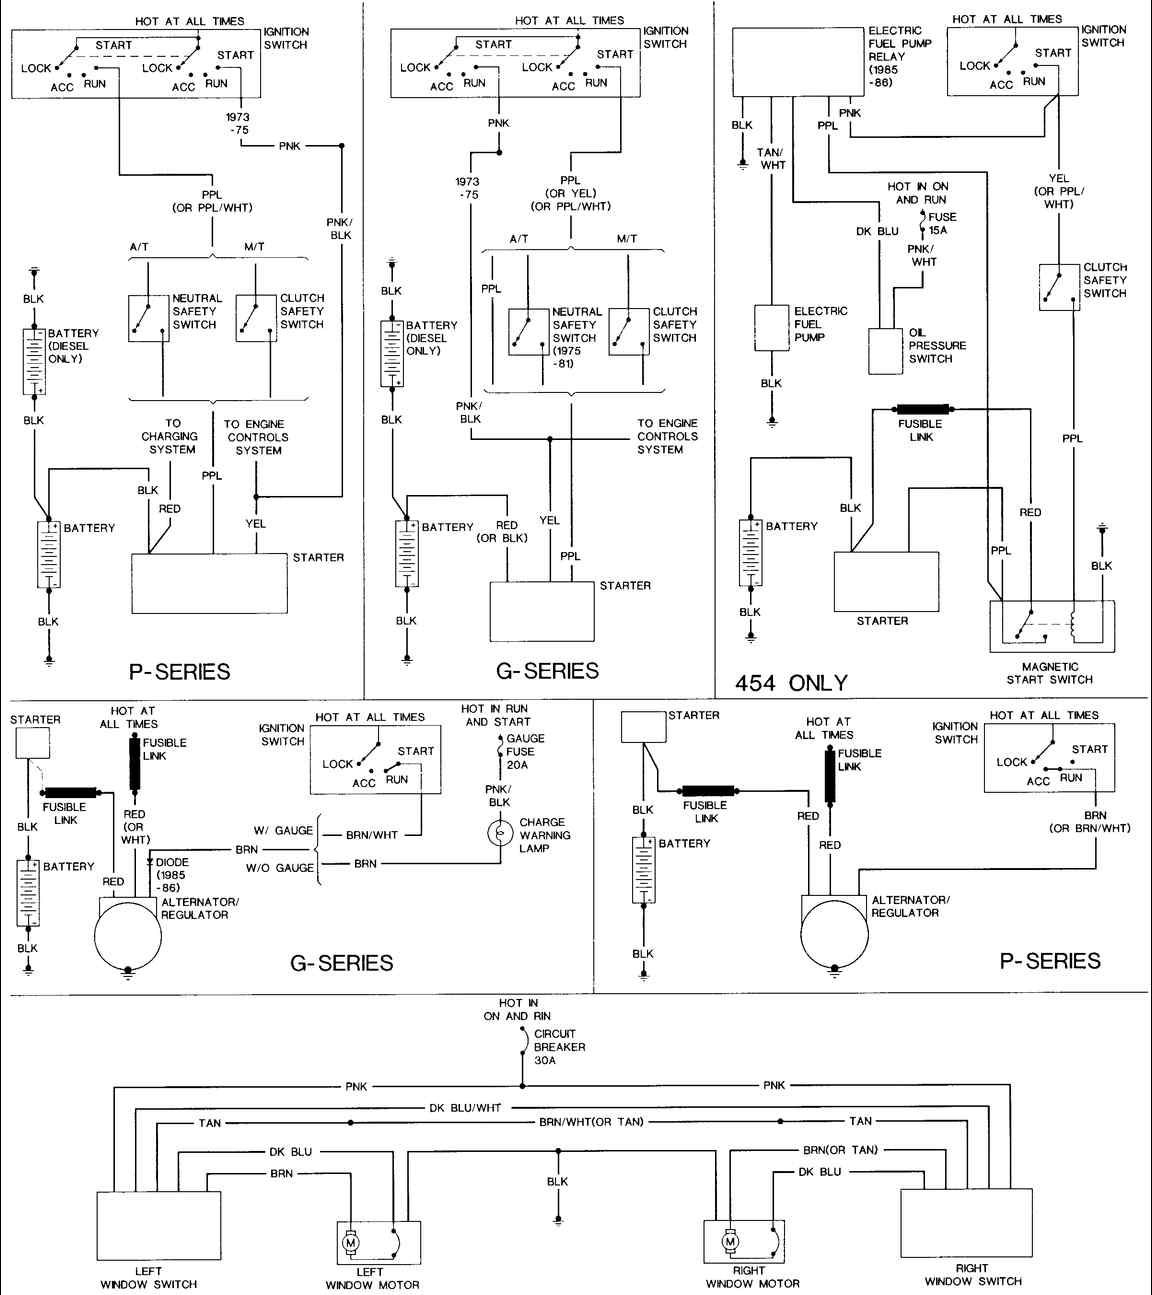 0c73623a181dc376dbb4777e2029d285 85 chevy truck wiring diagram 85 chevy van the steering column 1993 chevy truck wiring schematic at reclaimingppi.co